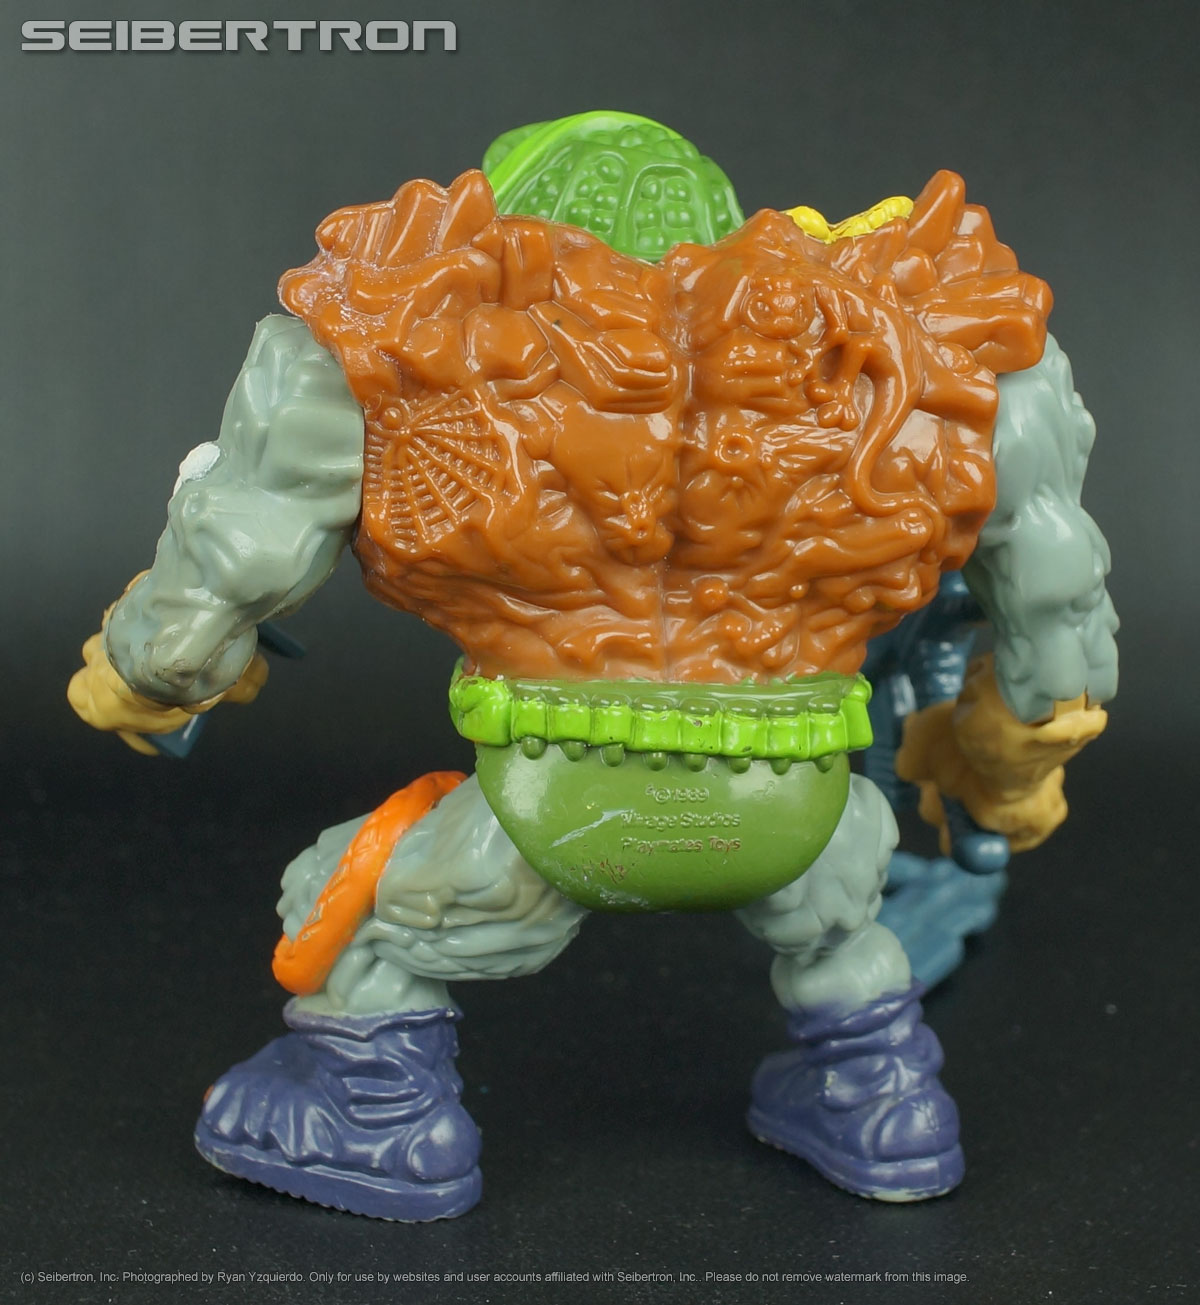 Teenage Mutant Ninja Turtles listings from Seibertron.com: GENERAL TRAAG Teenage Mutant Ninja Turtles 100% complete vintage 1989 TMNT